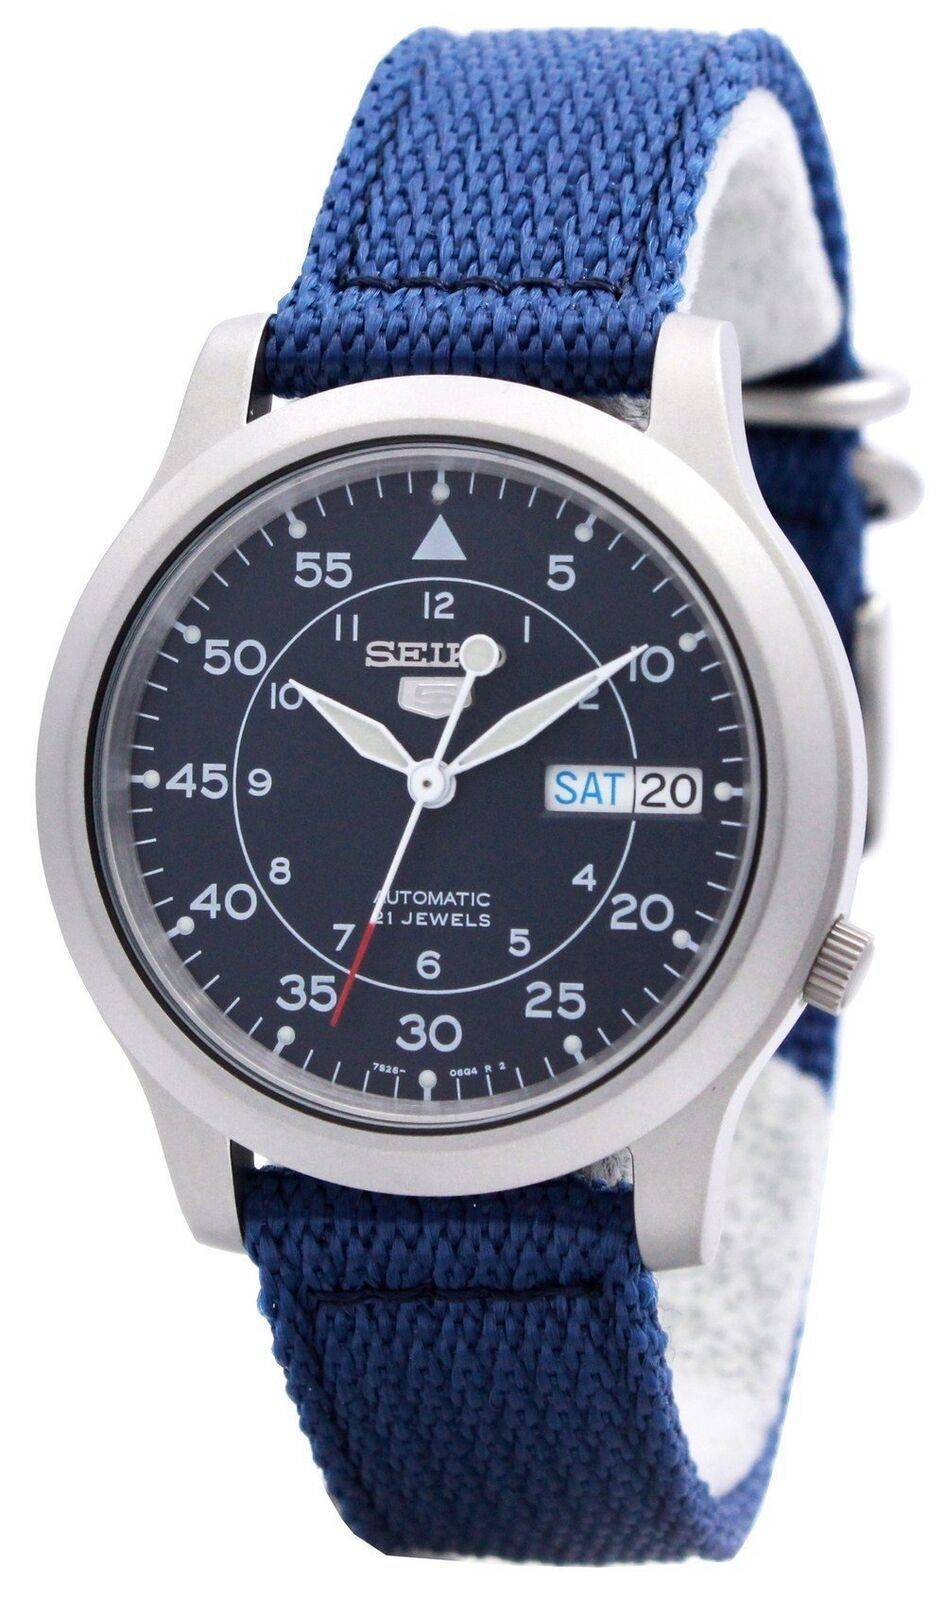 45c984766 Details about Seiko 5 Military Automatic Nylon Strap SNK807K2 Men's Watch